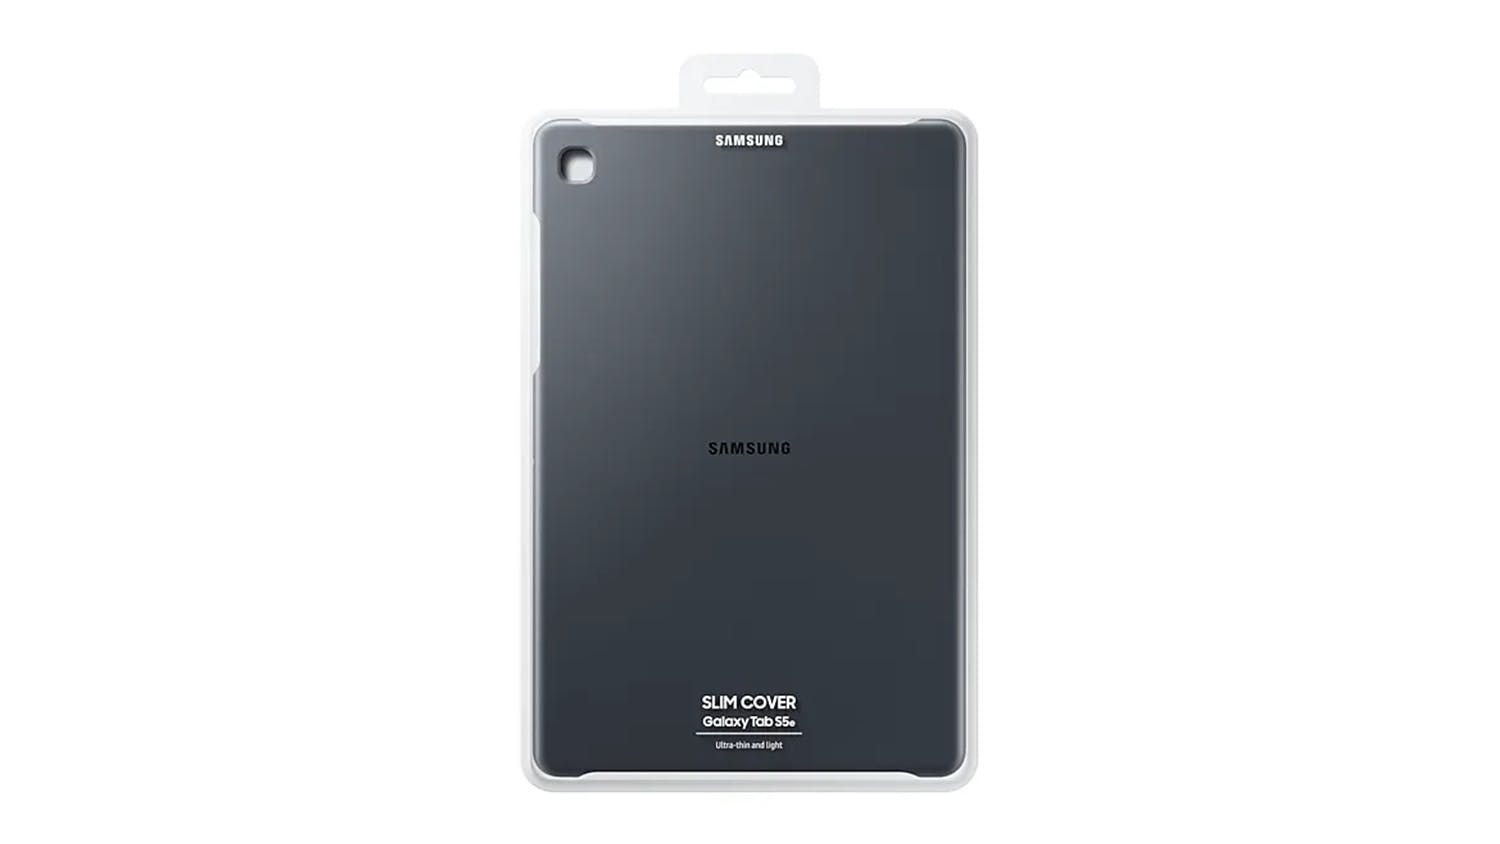 Samsung Slim Cover for Galaxy Tab S5e